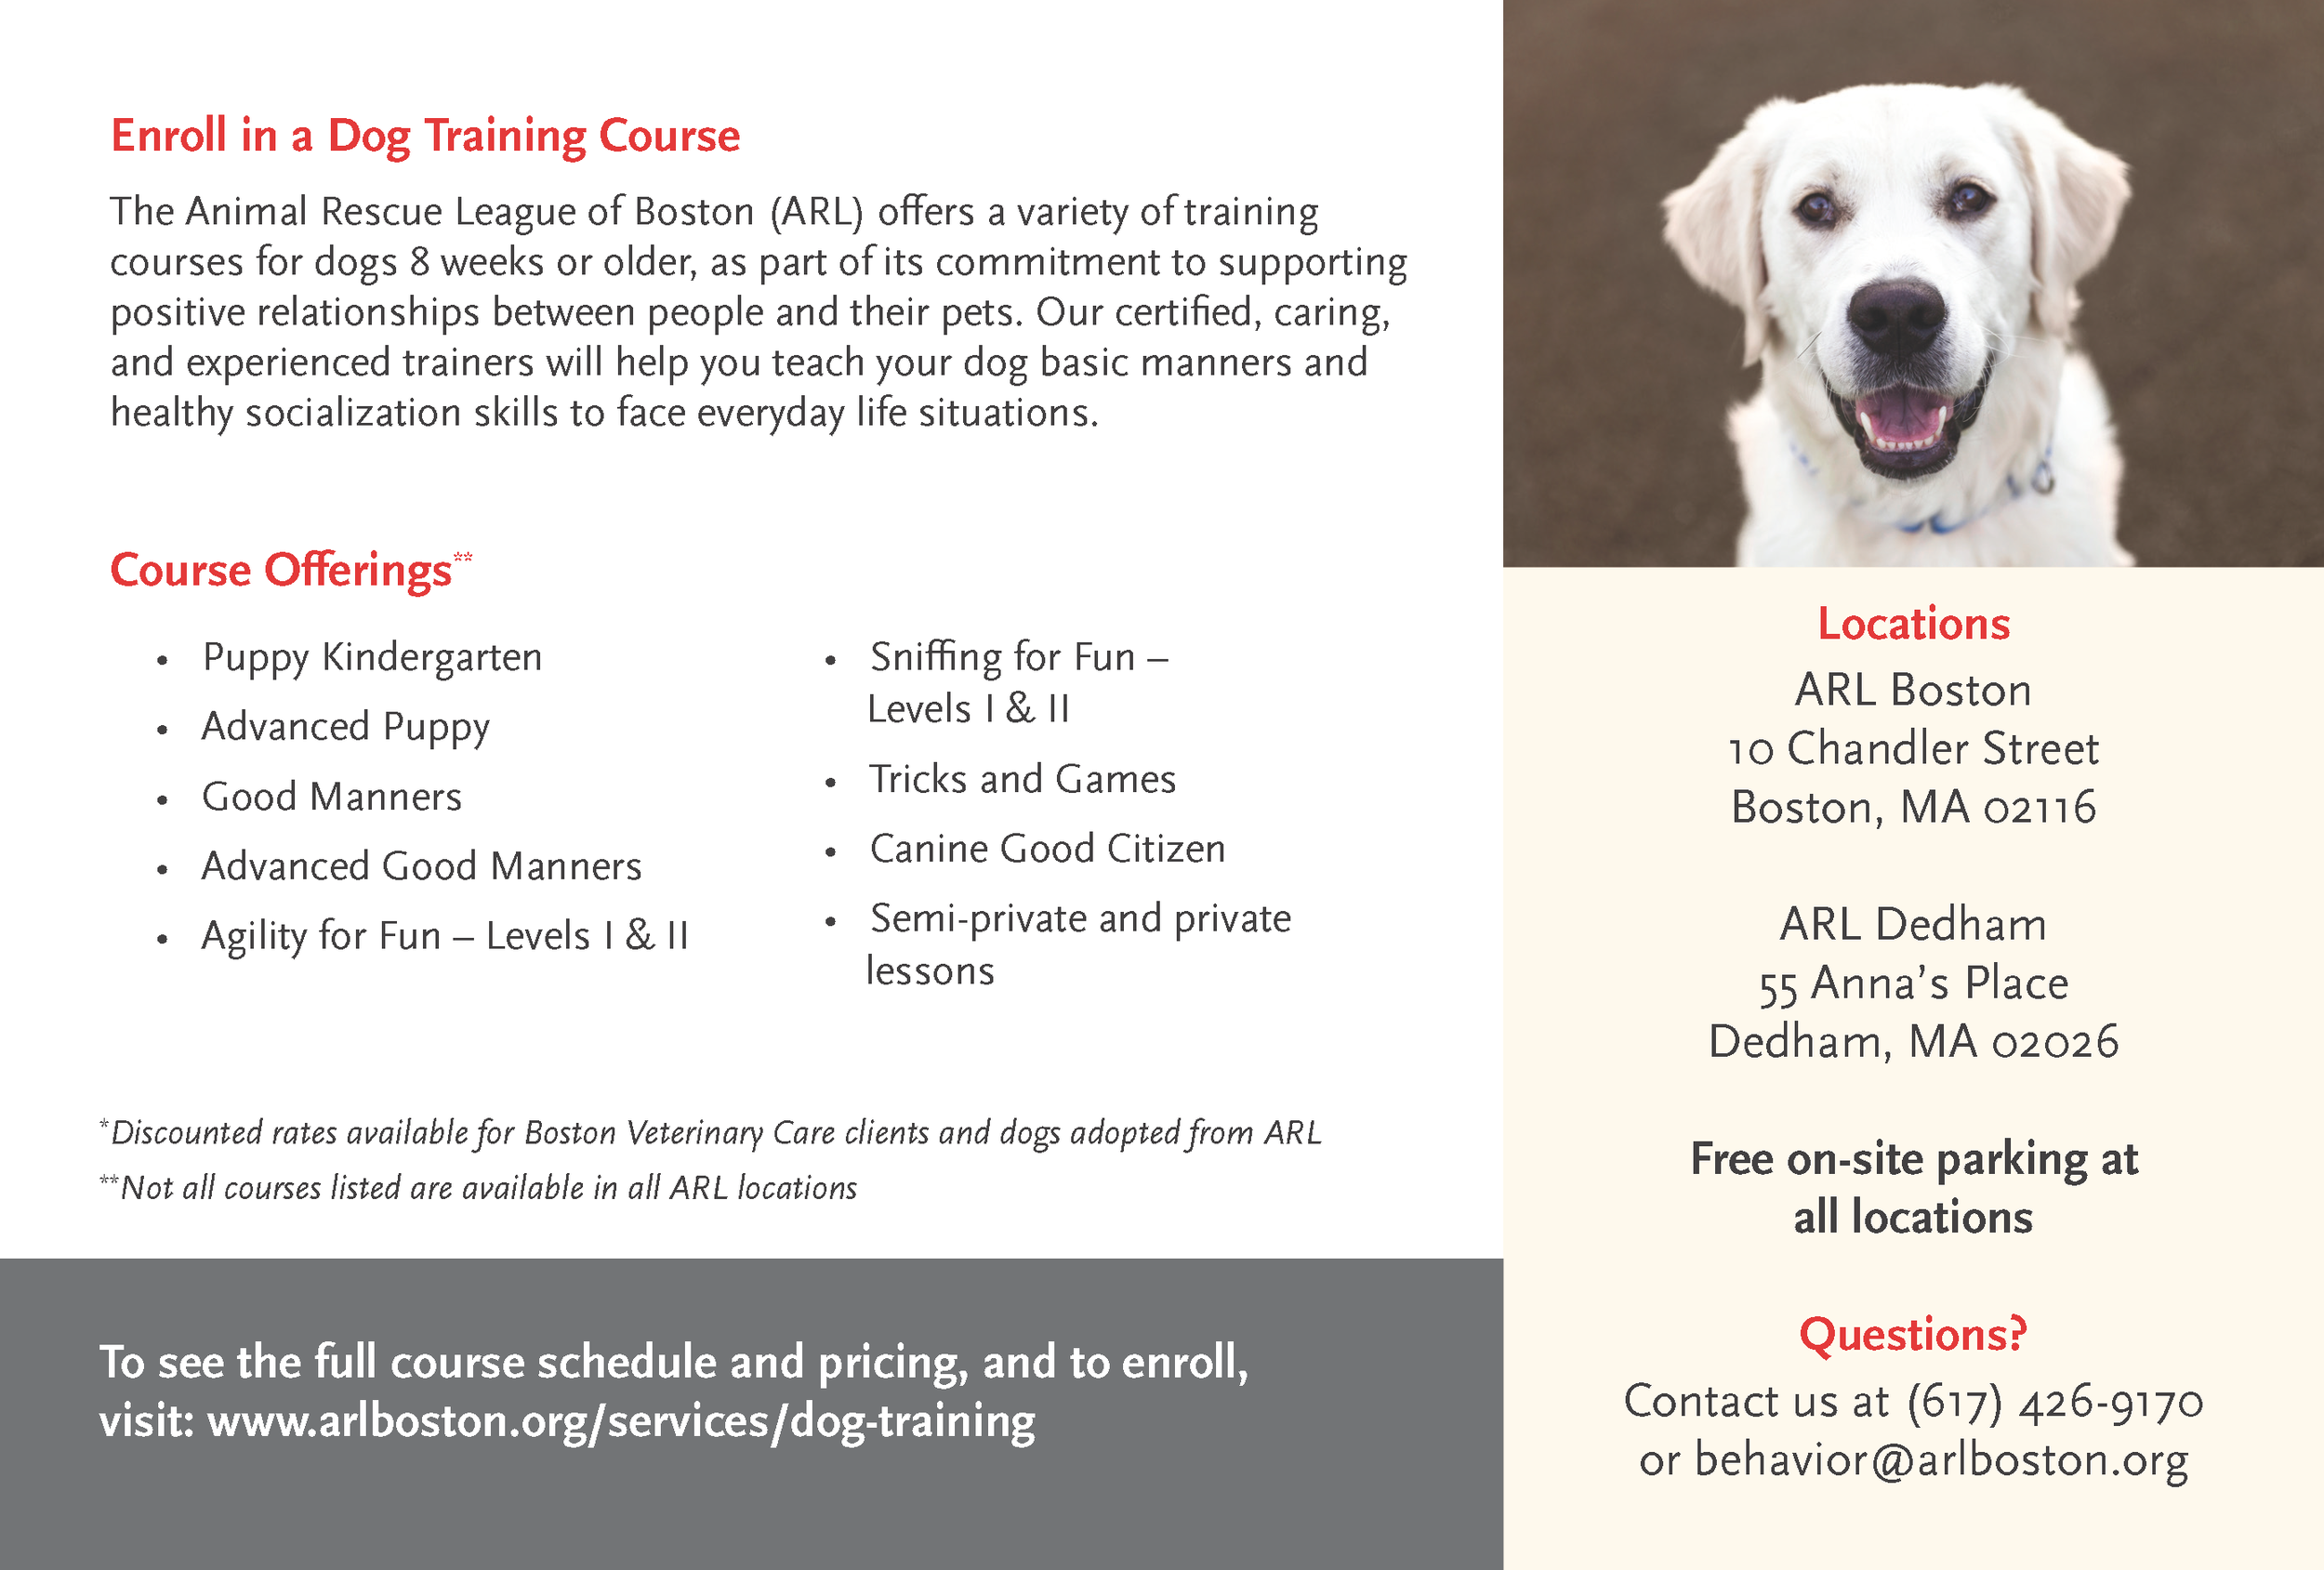 2019_Dog-Training-Post-Card_9x6_Final-BACK.png